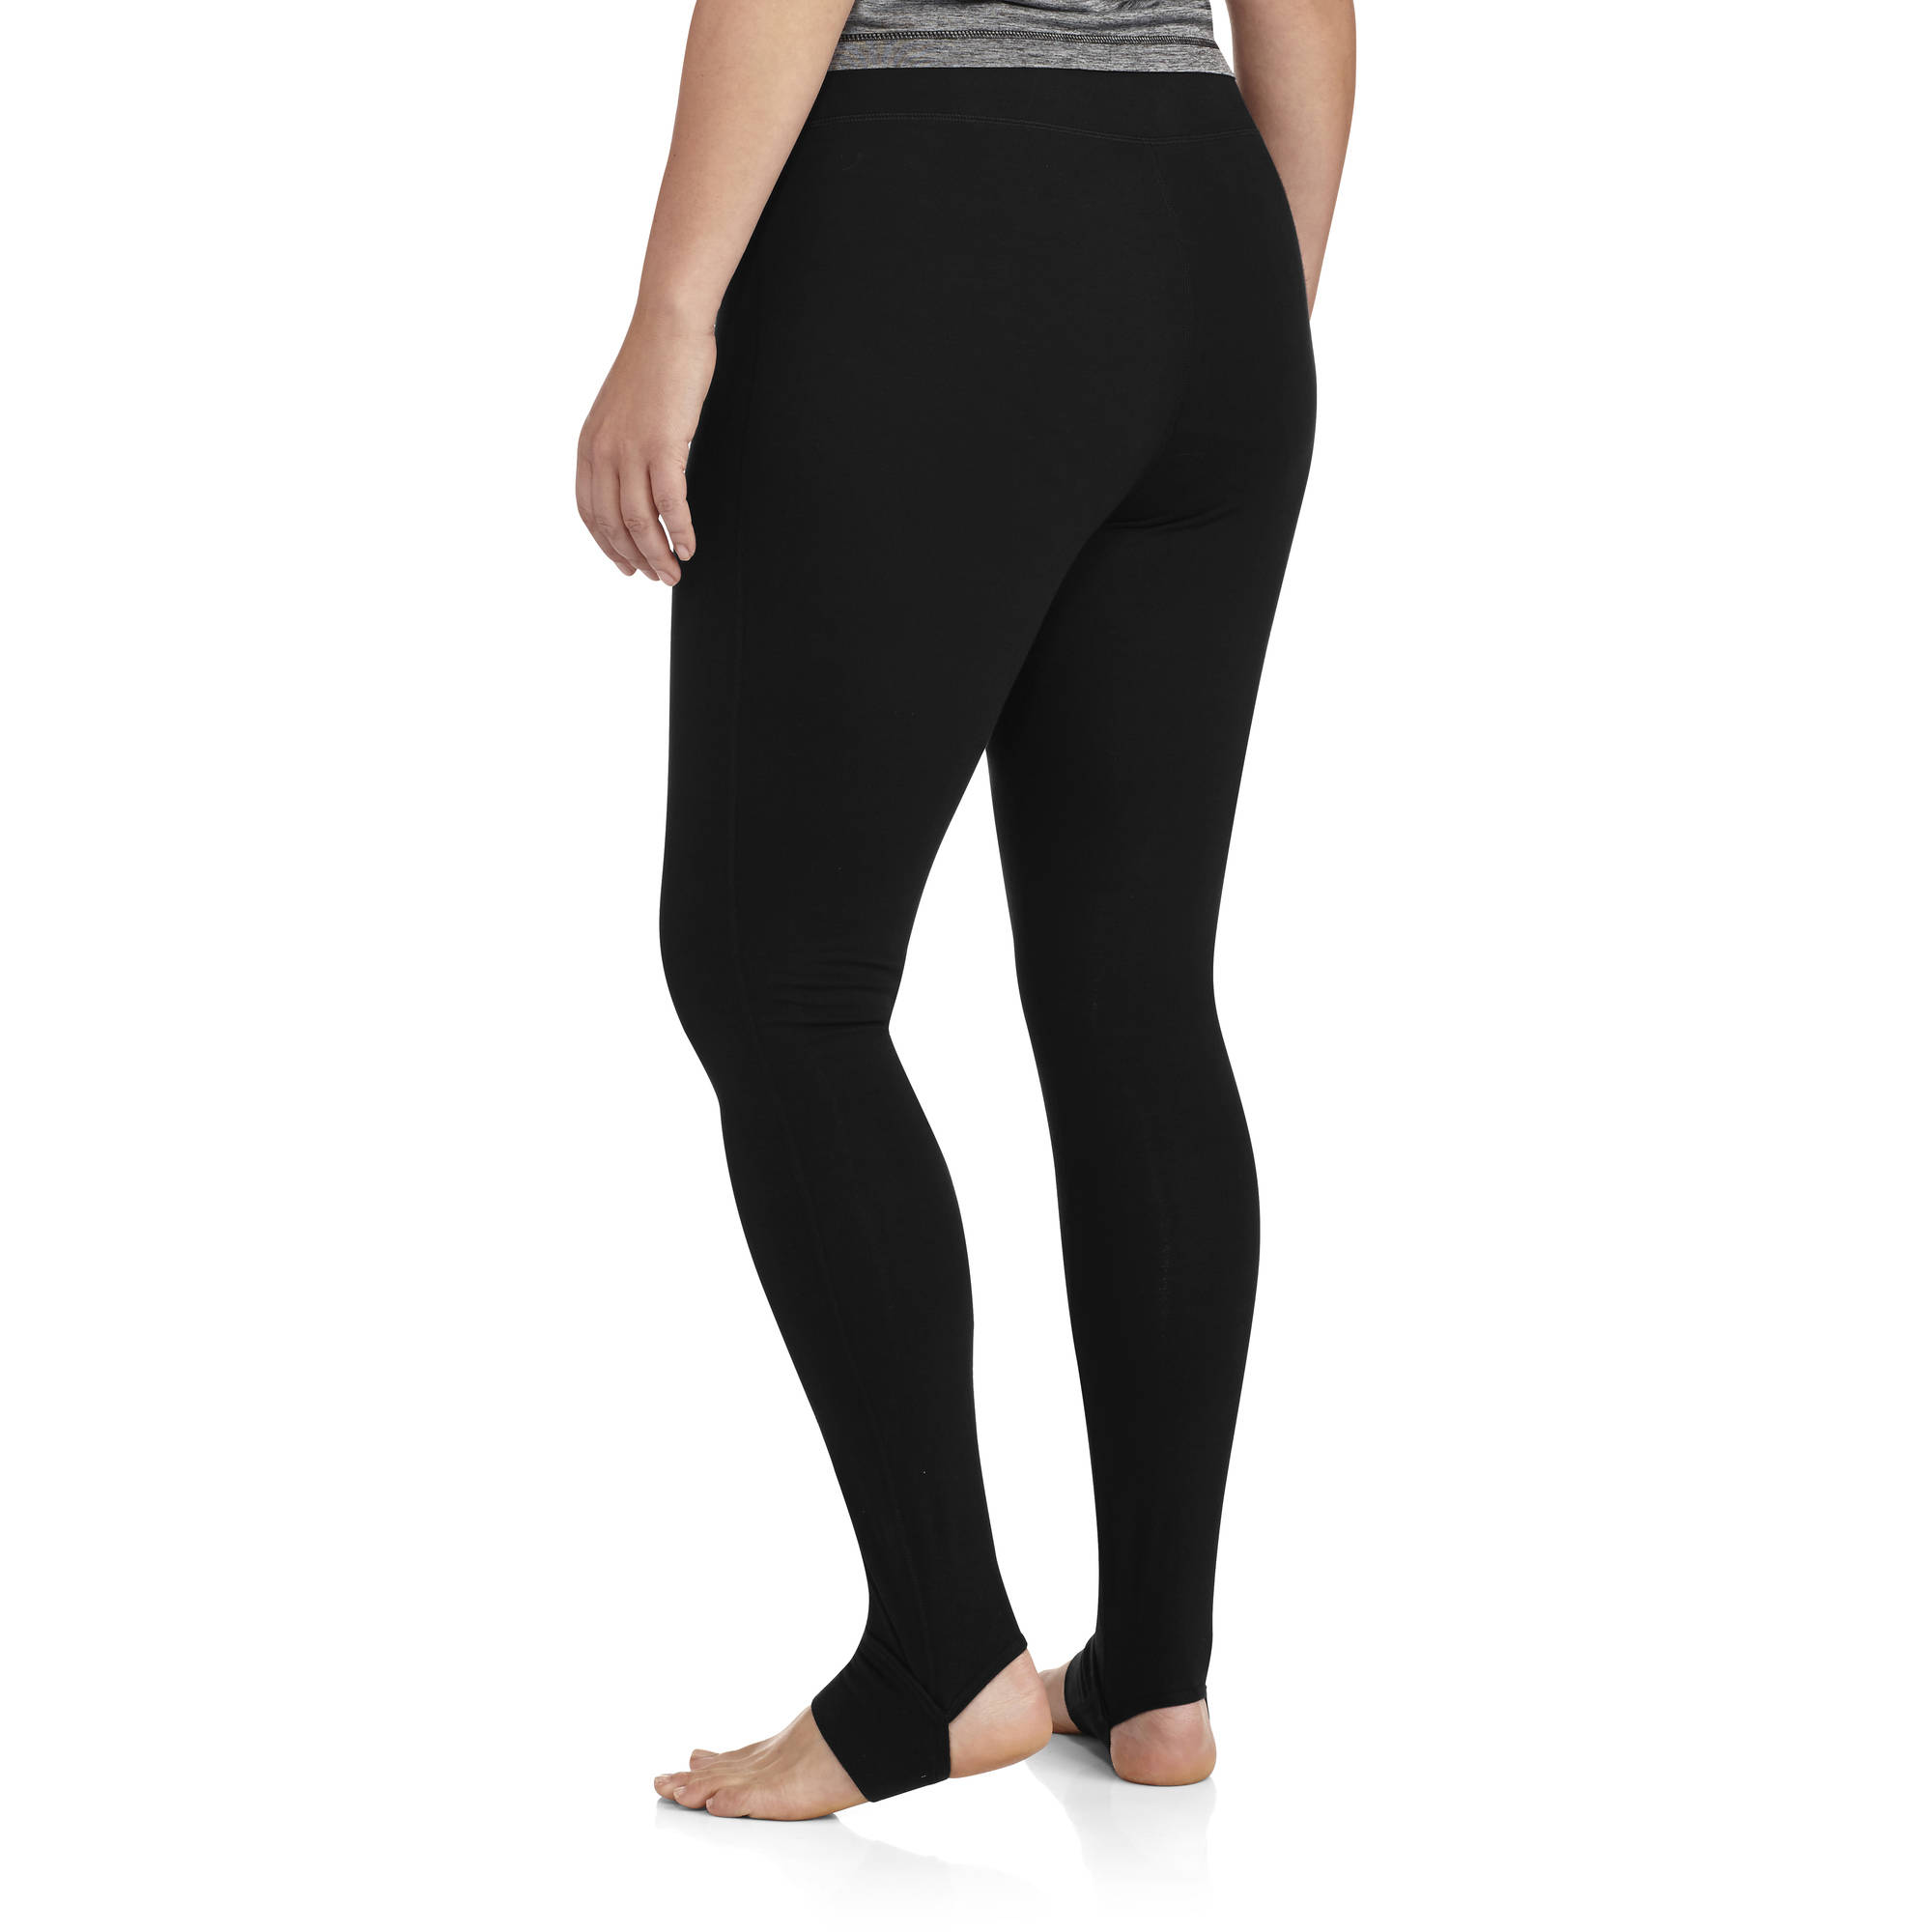 Stirrup Leggings Plus Size